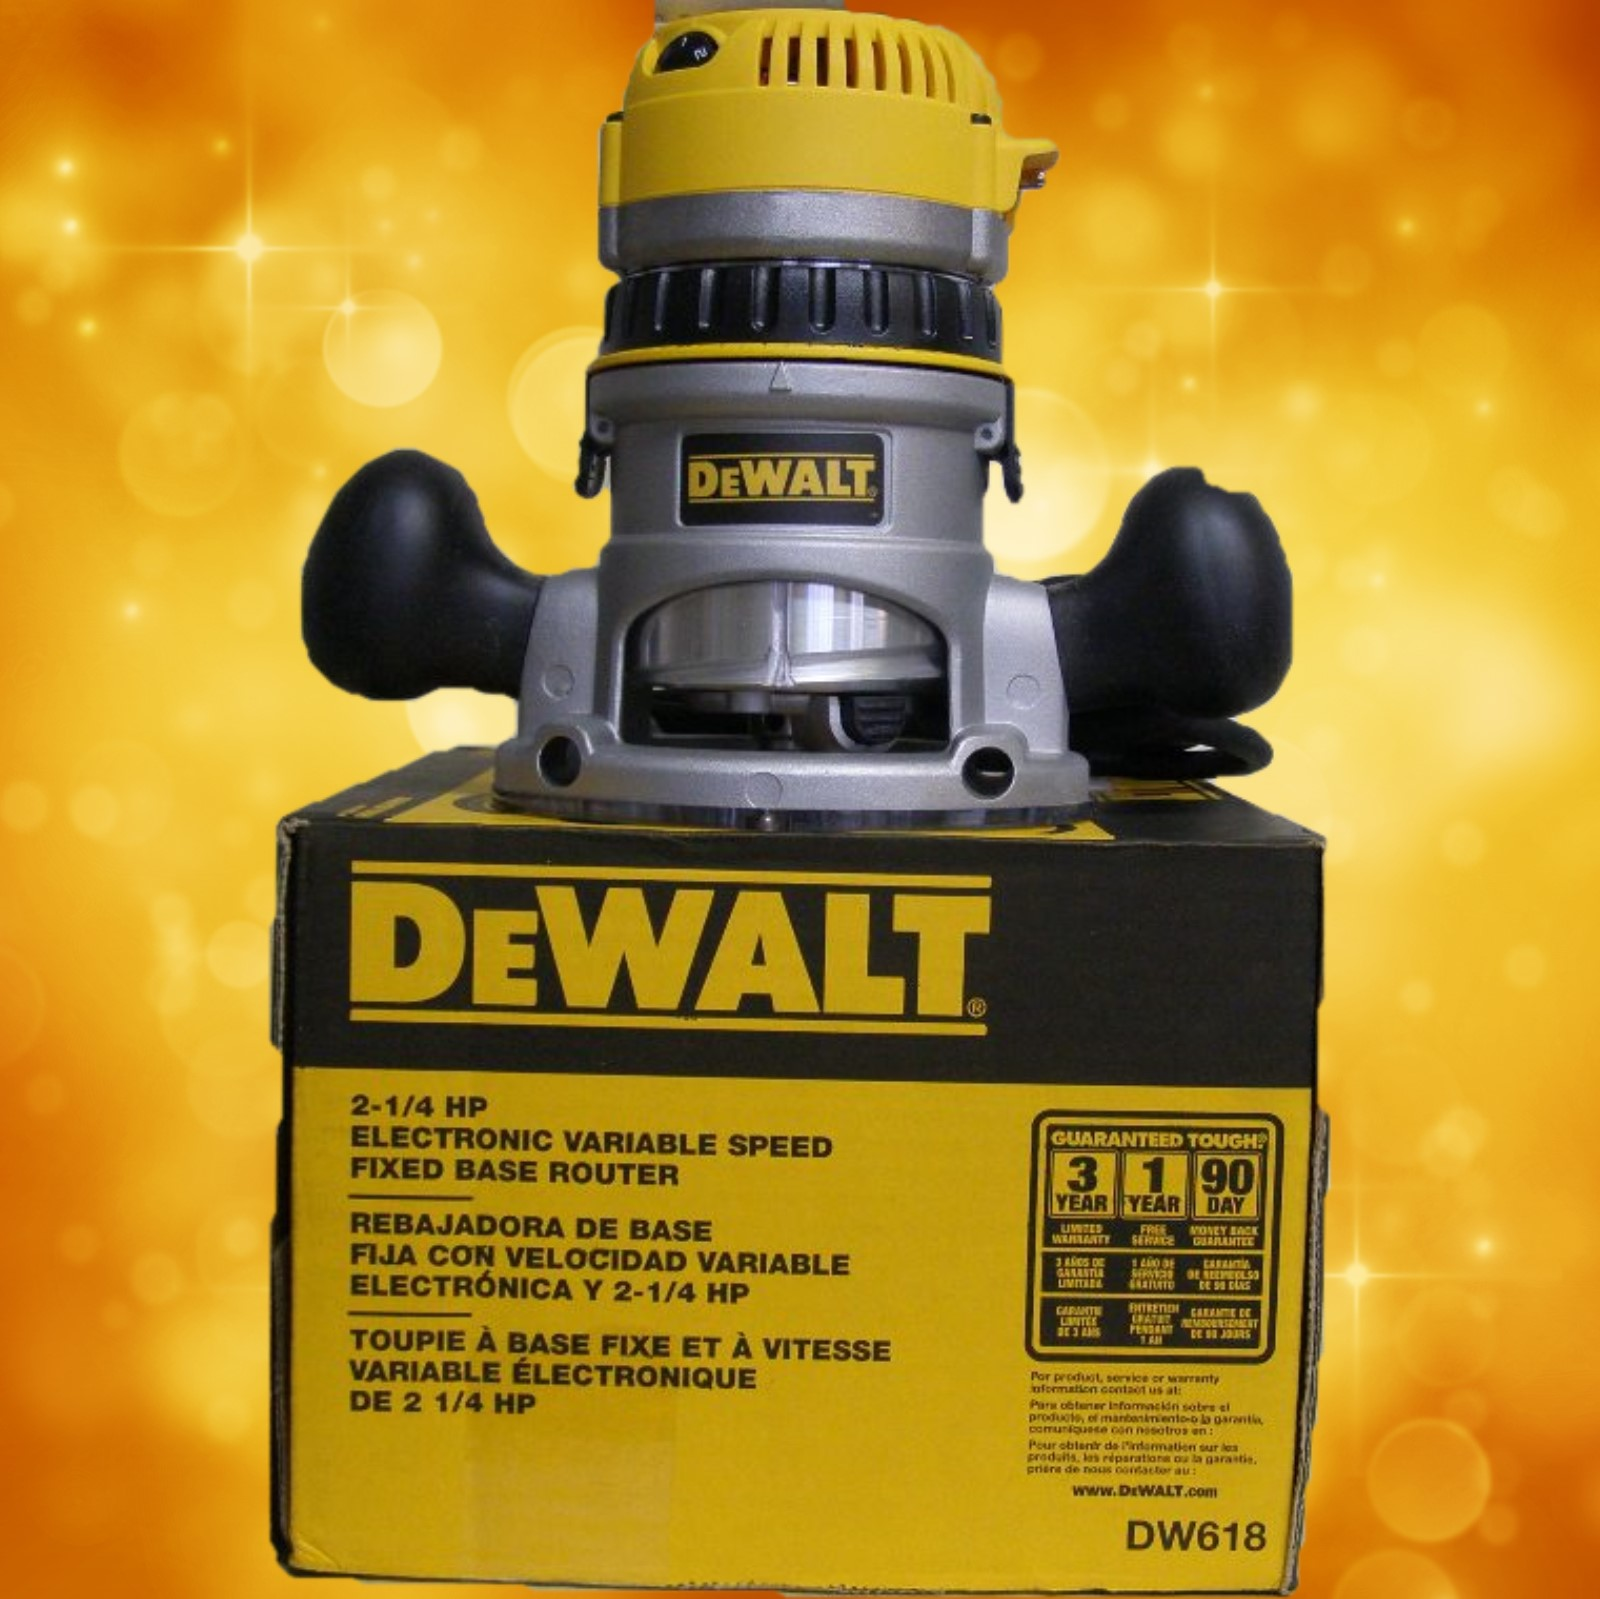 DeWalt DW618 2-1/4 HP (maximum motor HP) EVS Fixed Base Router with Soft Start DW618